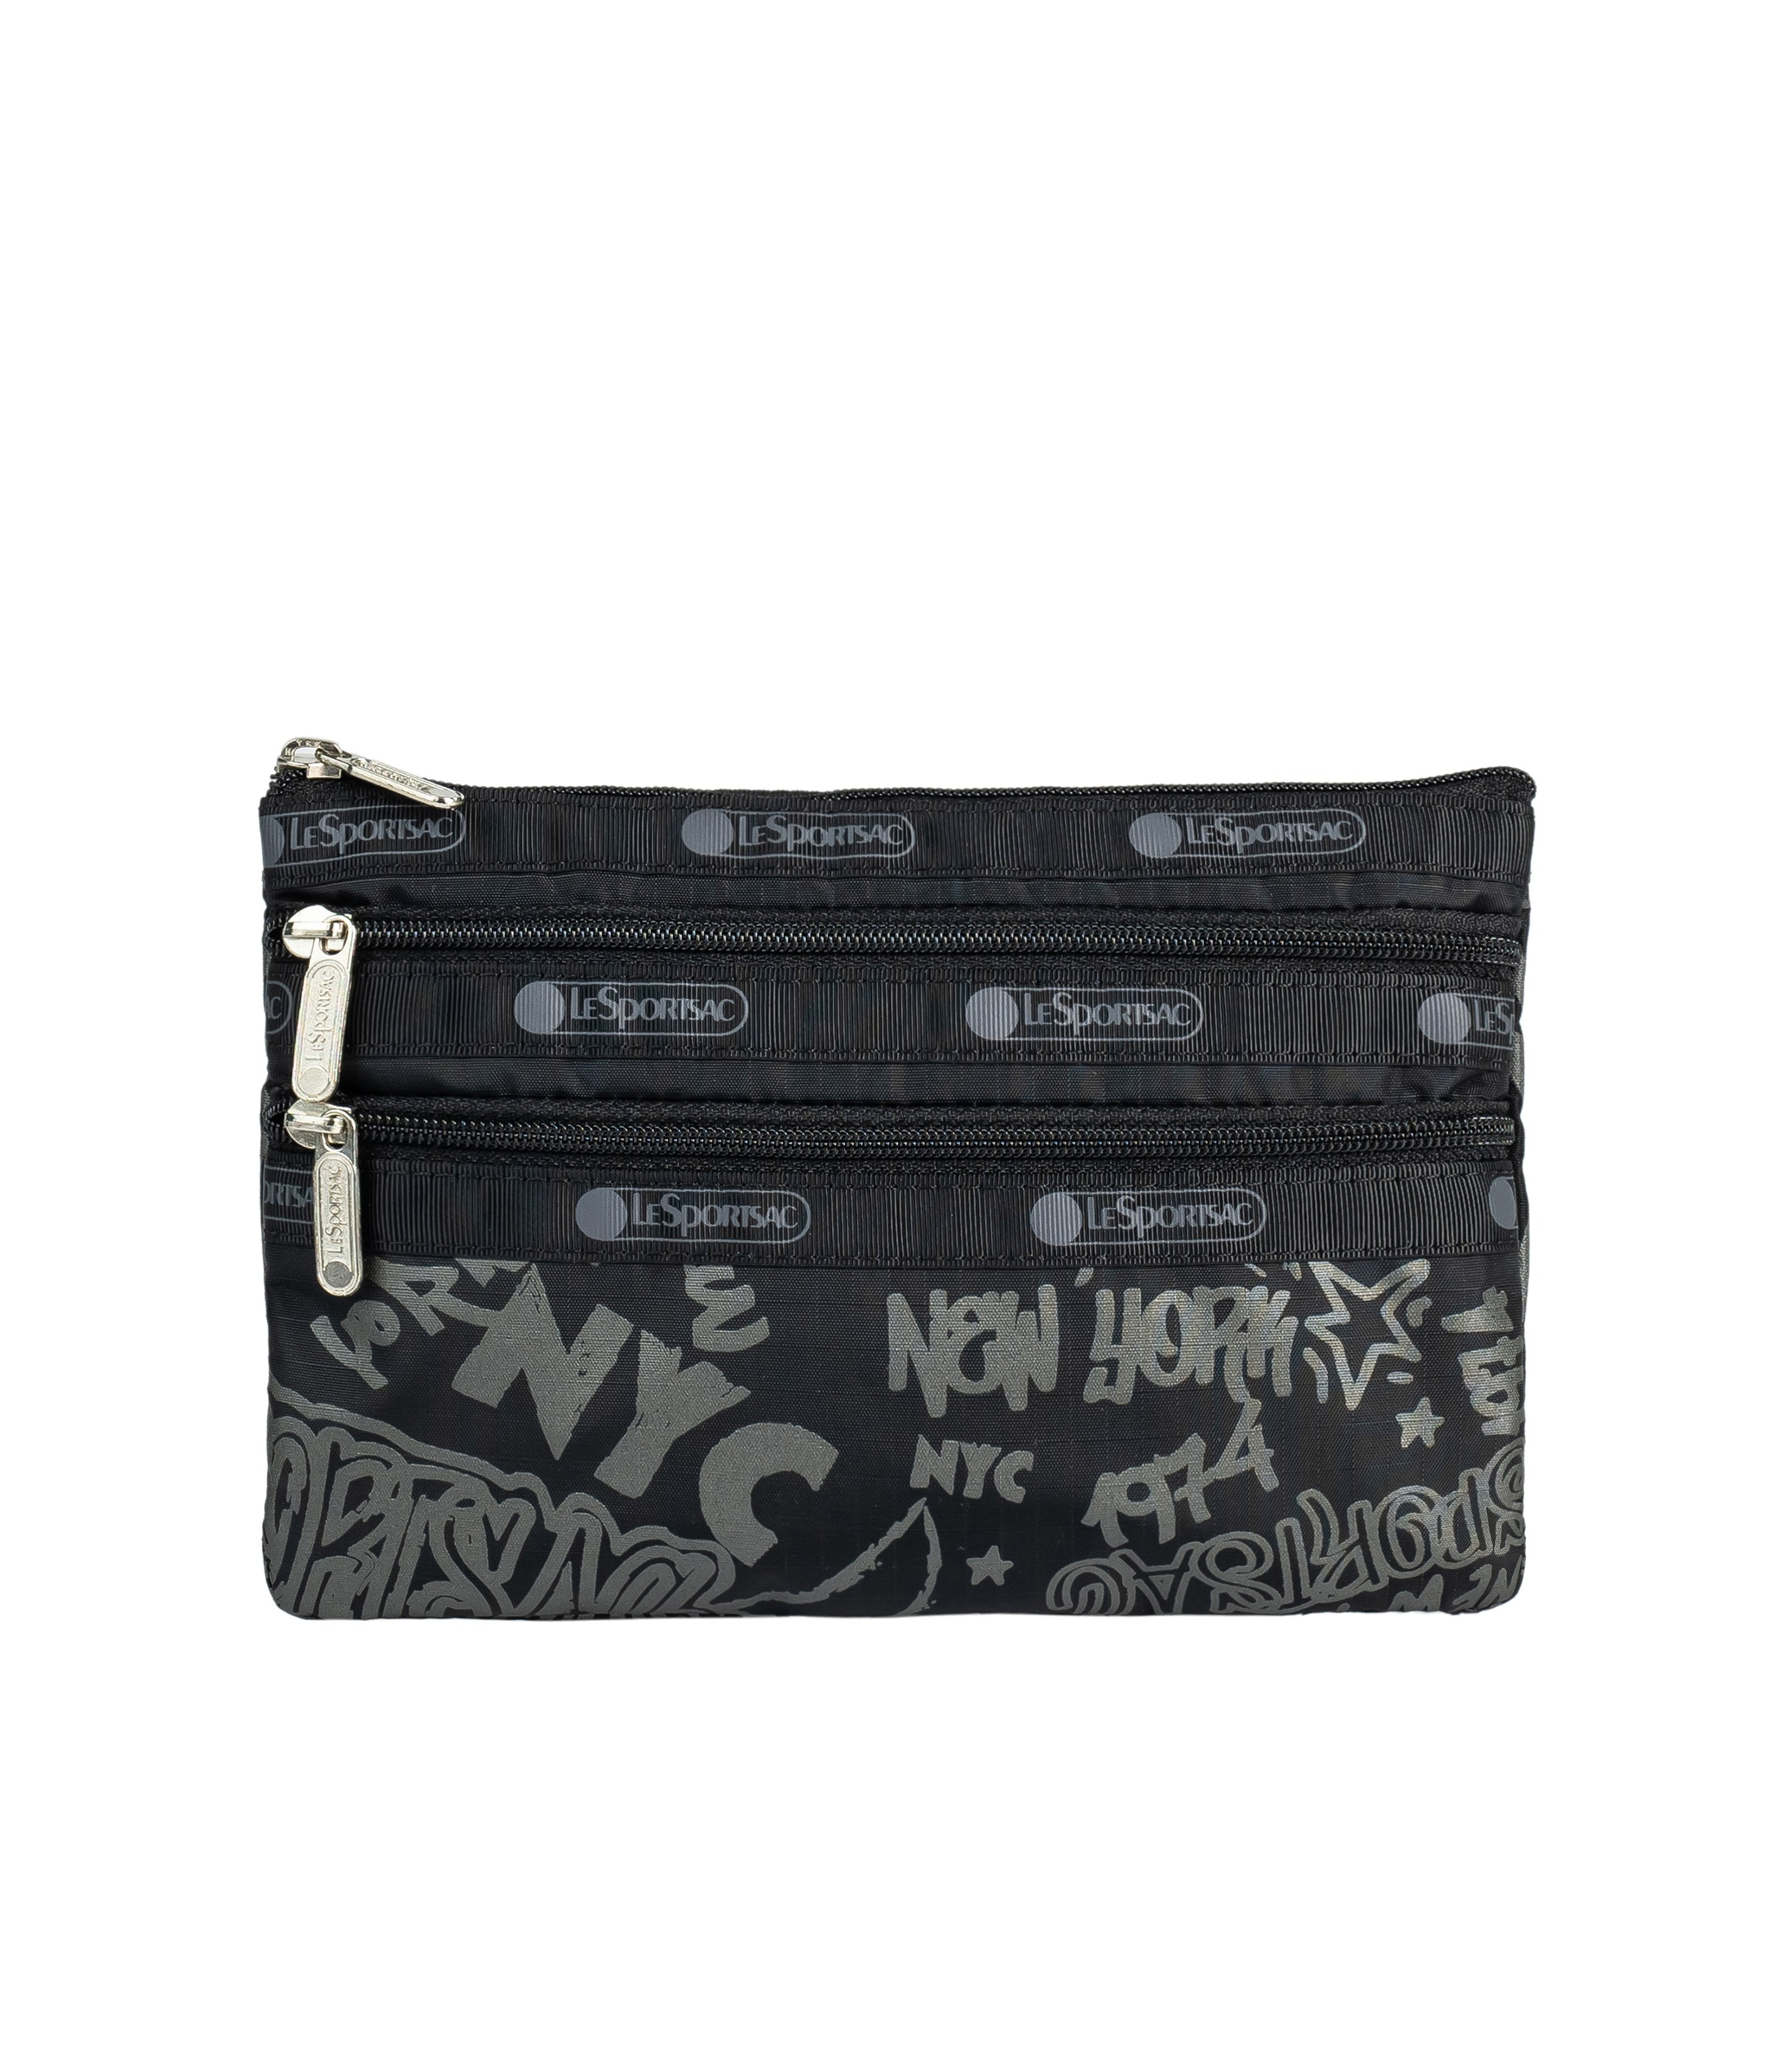 LeSportsac - Accessories - 3-Zip Cosmetic - LeSportsac City Script print